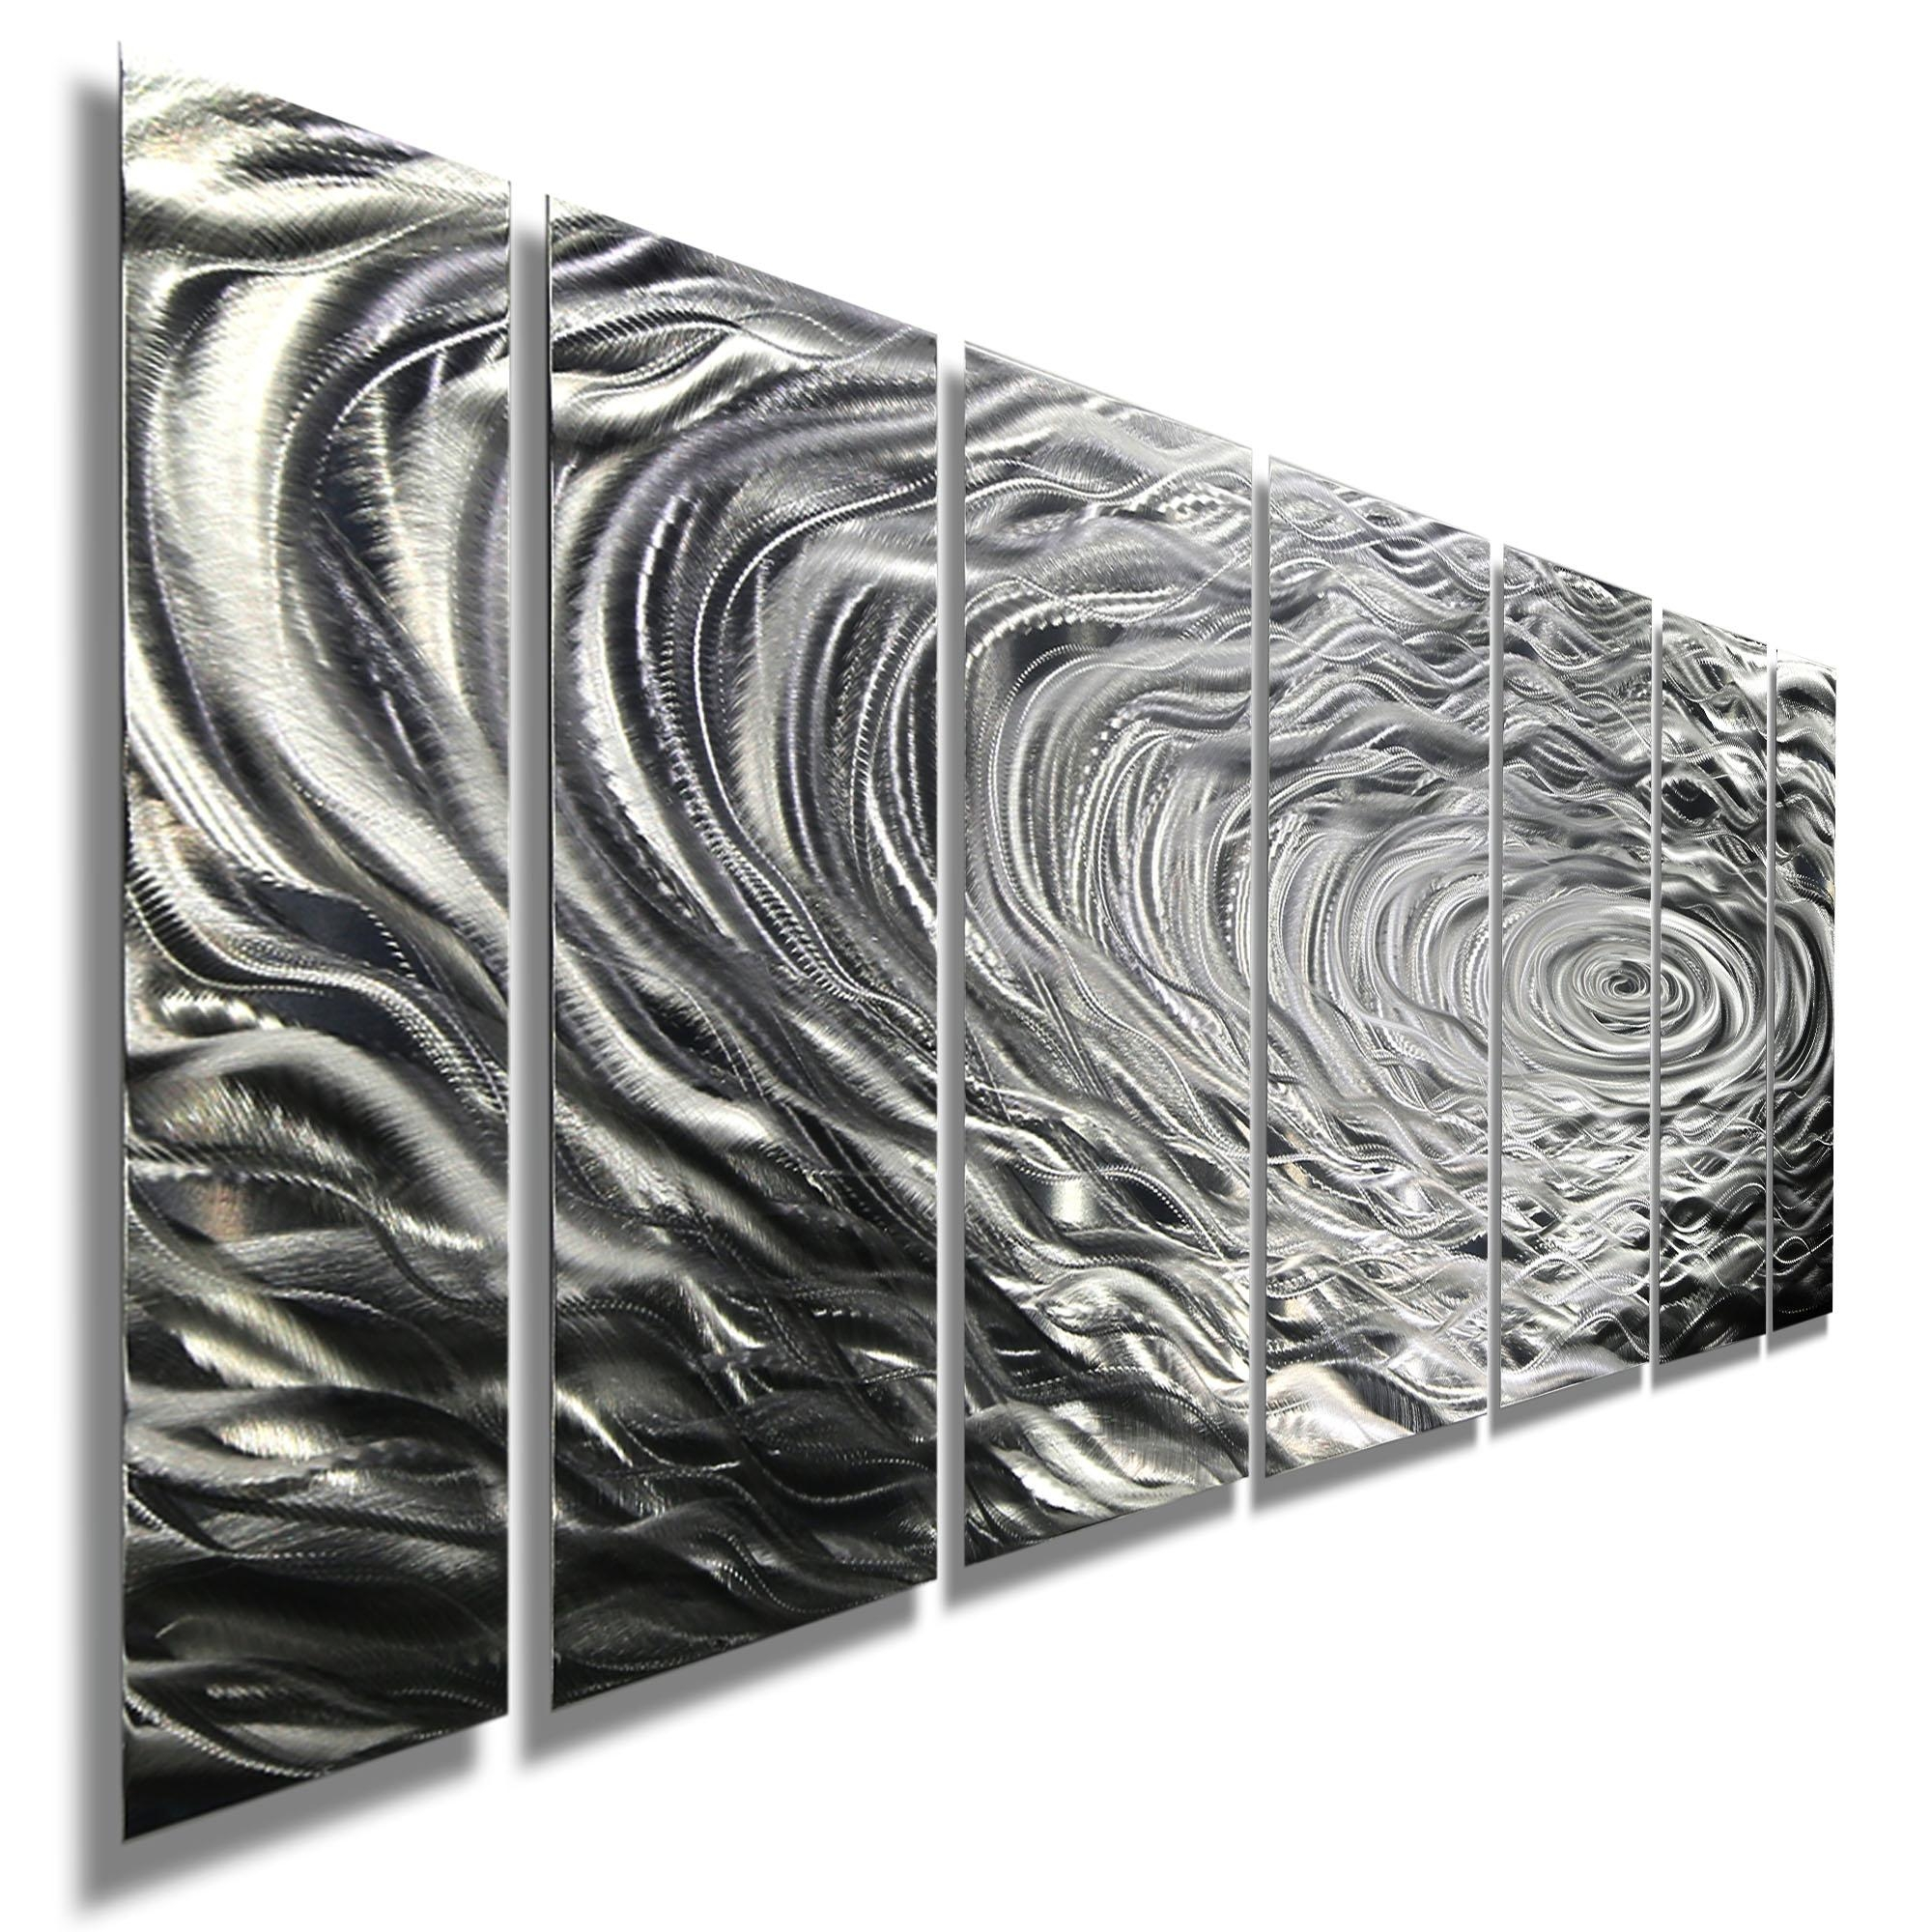 Ripple Effect Xl – Silver Abstract Corporate Metal Wall Art Decor Inside Black Silver Wall Art (Image 16 of 20)